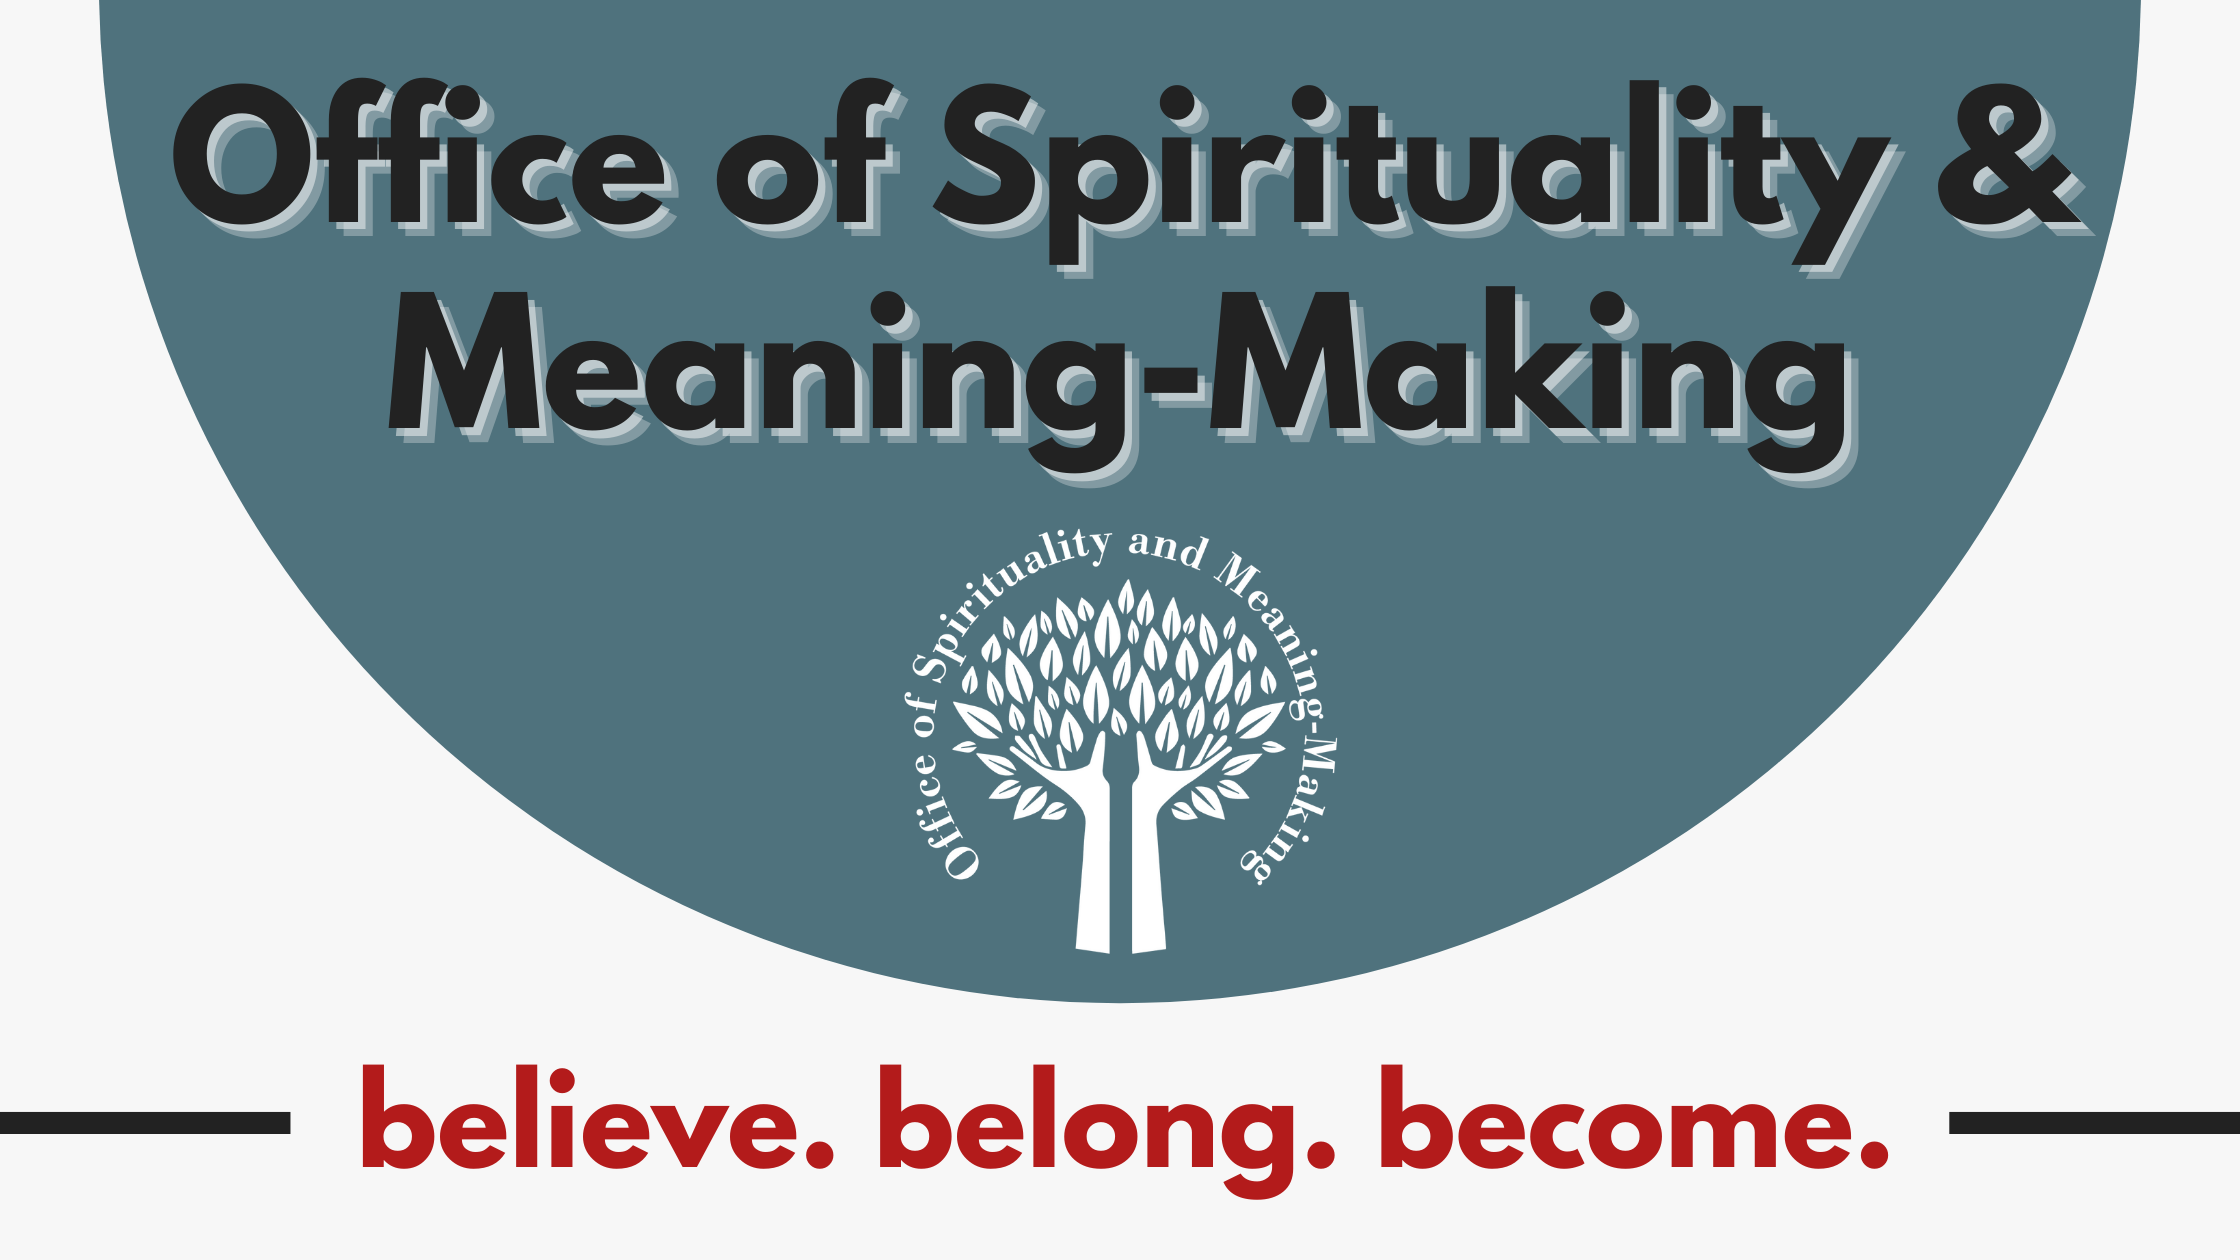 Office of Spirituality and Meaning-Making logo, which pictures two hands extending upward in the shape of a tree